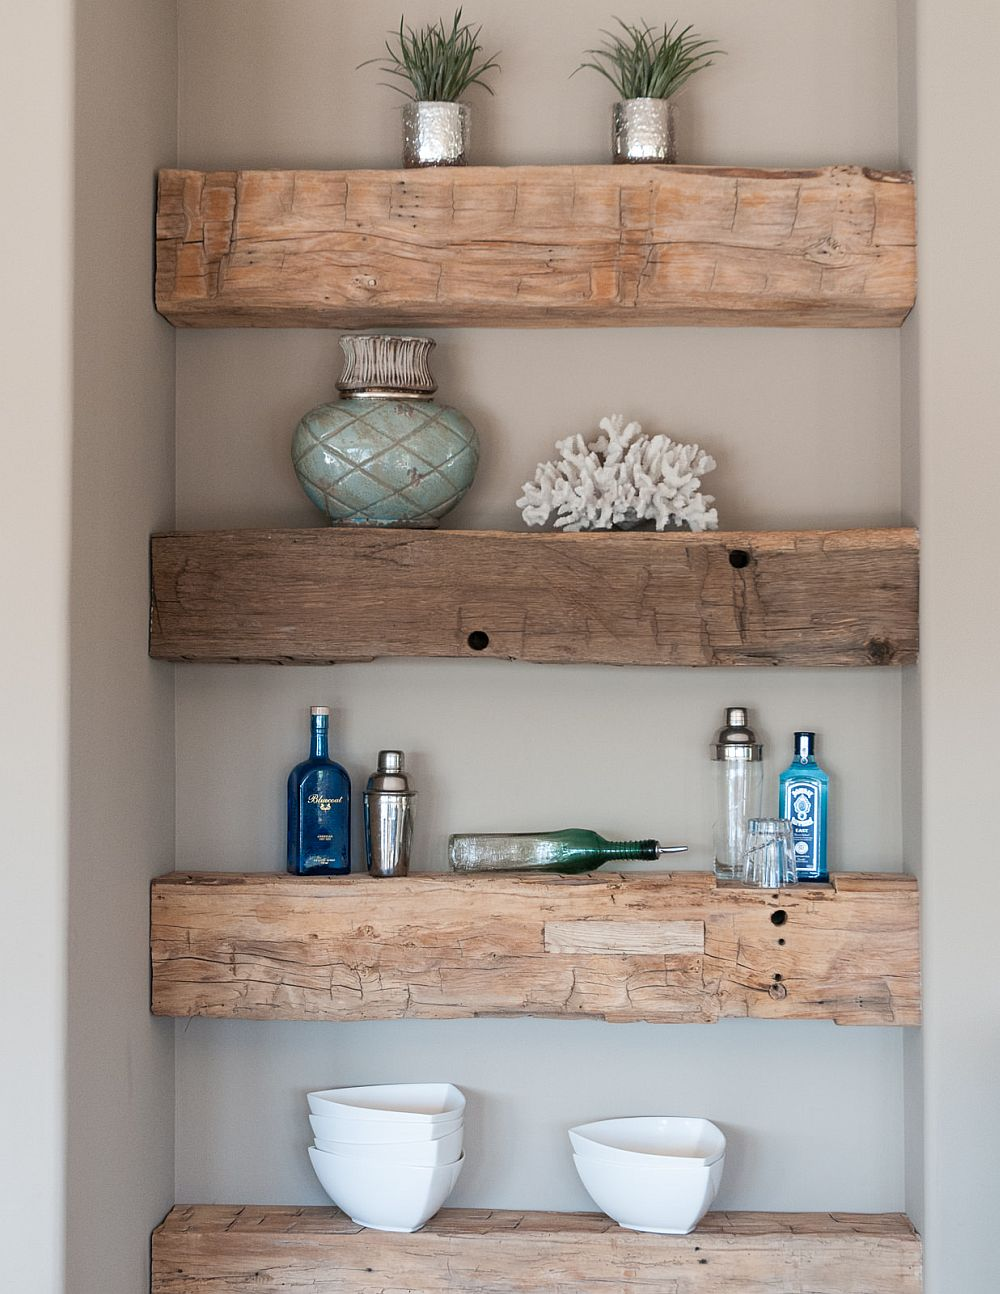 Turn-the-small-niche-in-the-kitchen-into-an-attractive-display-with-DIY-shelves